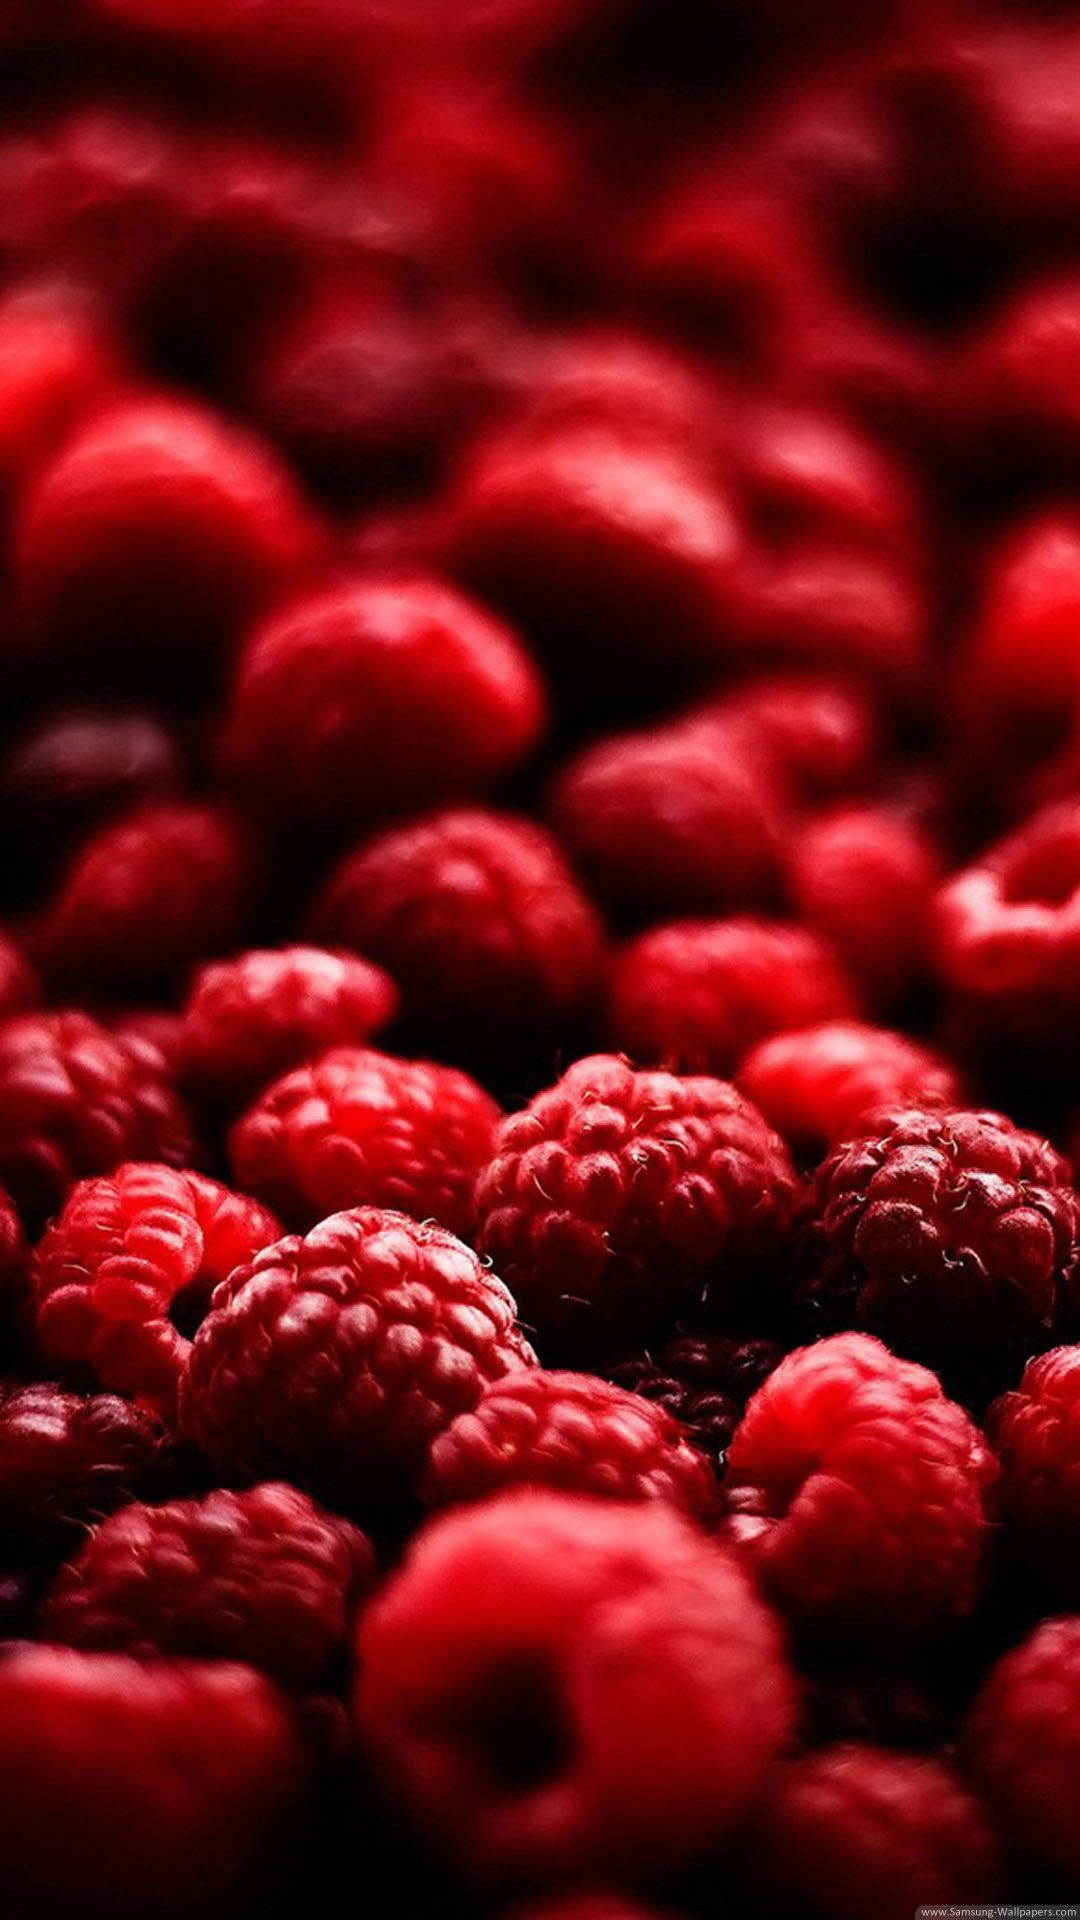 litchi red fruits raspberry background android wallpaper hd